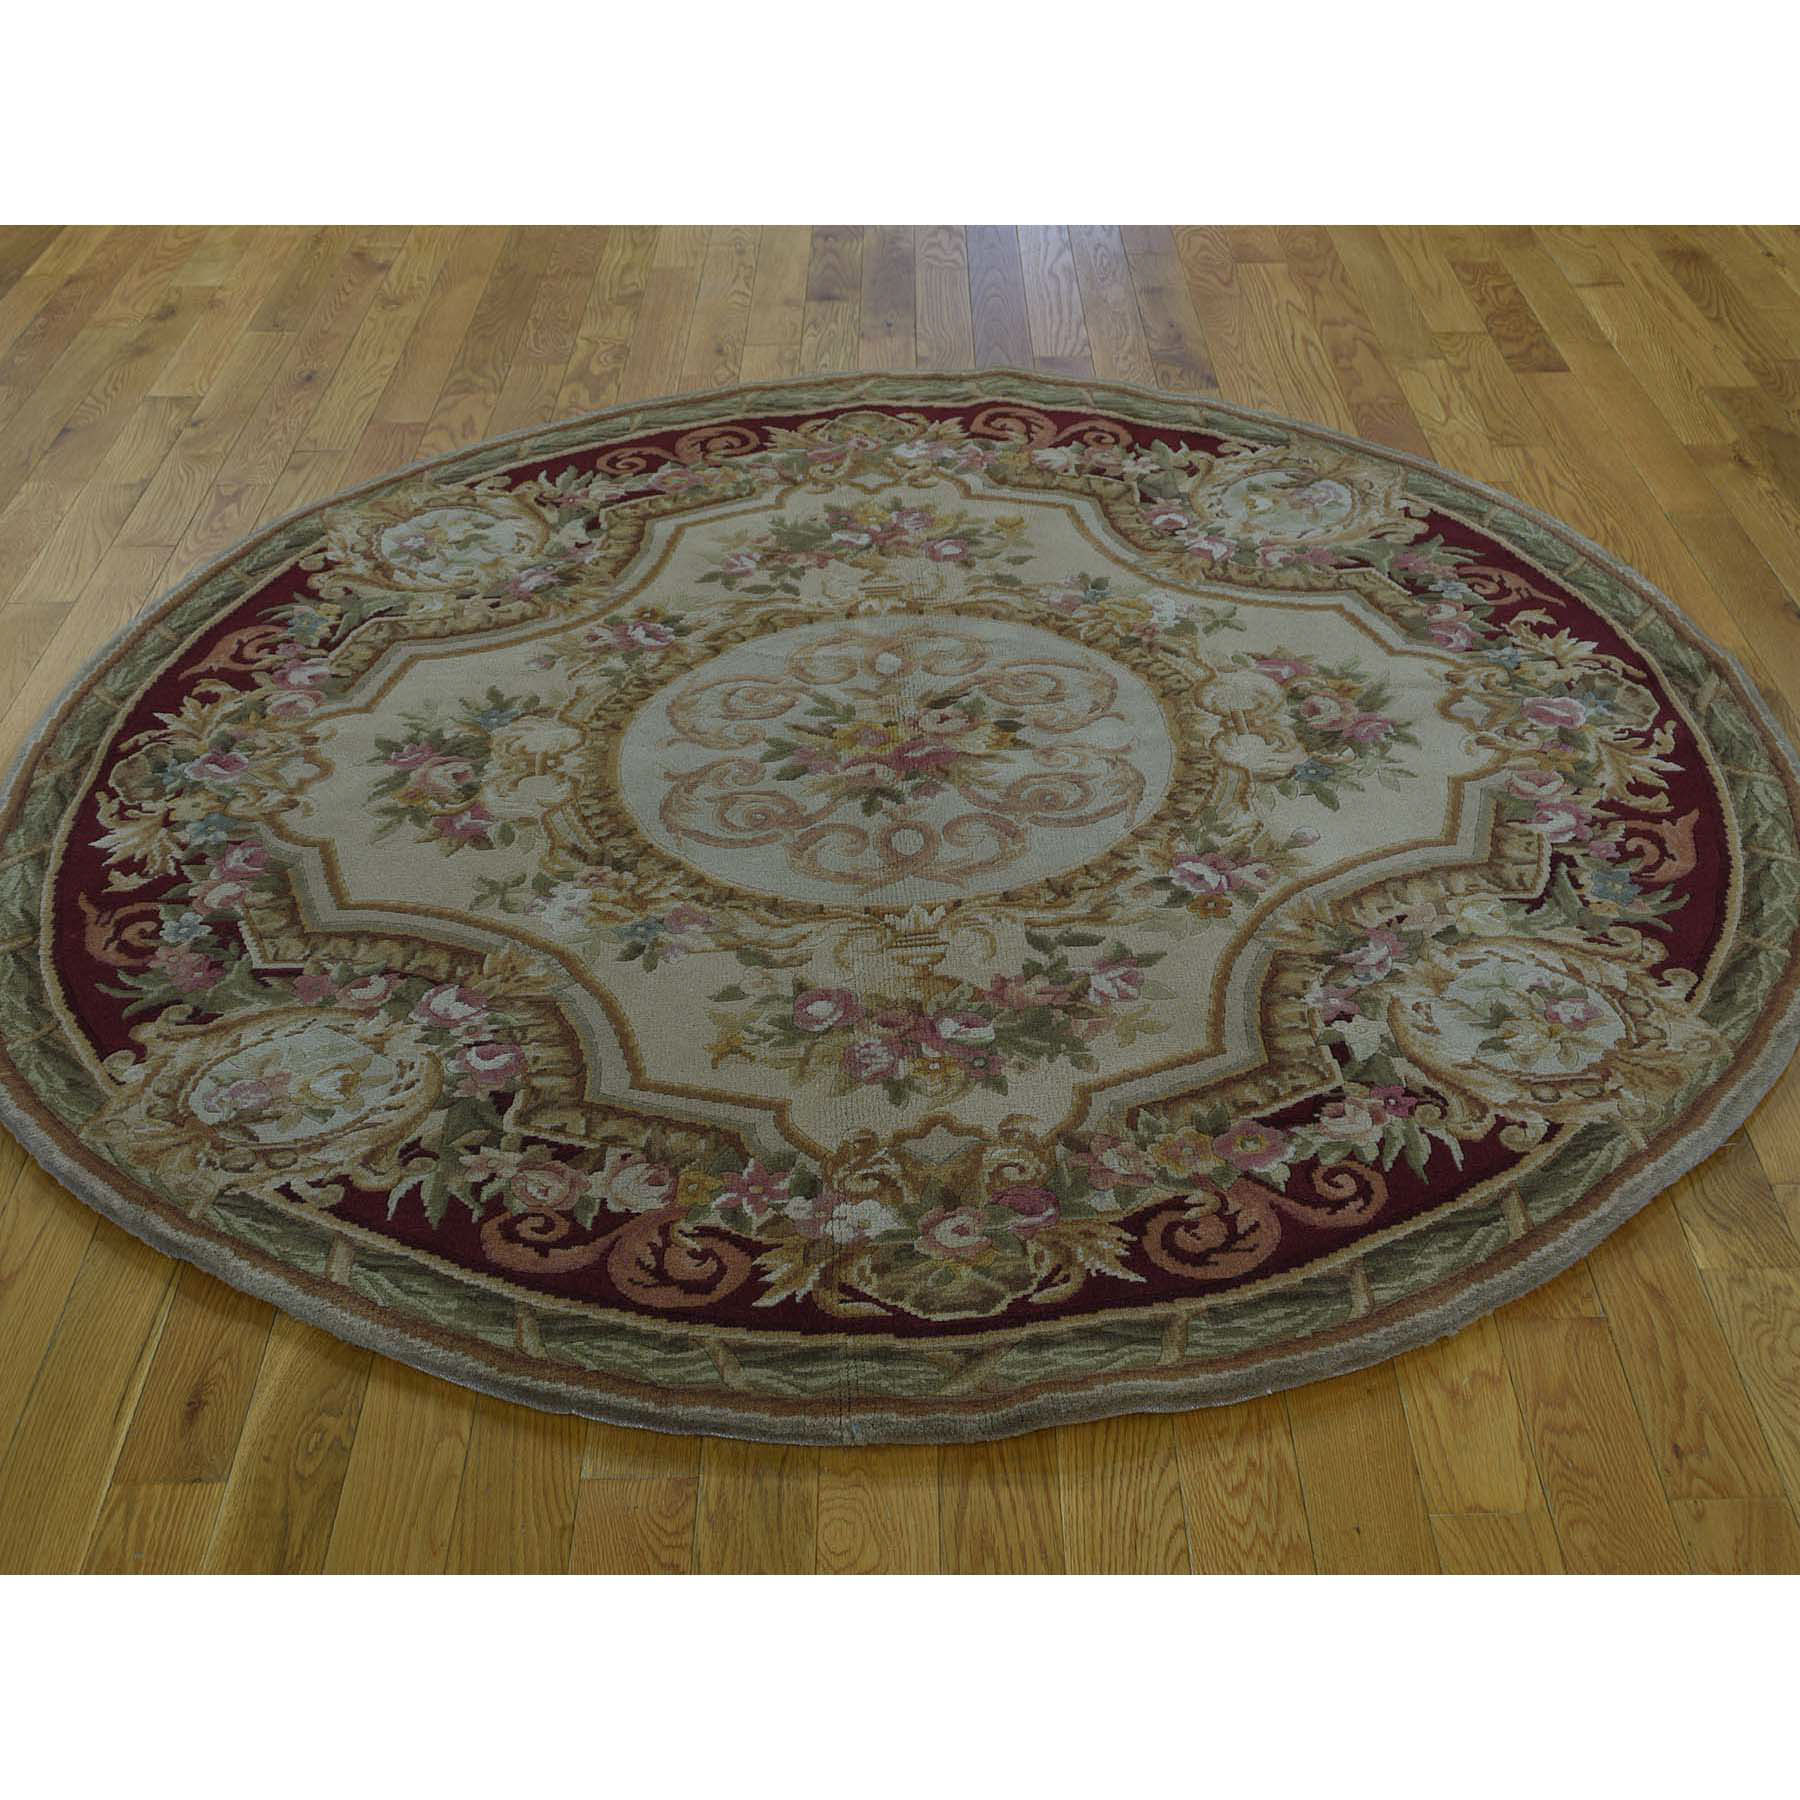 6'x6' Round Louis Phillippe Design Savonnerie Thick And Plush Rug